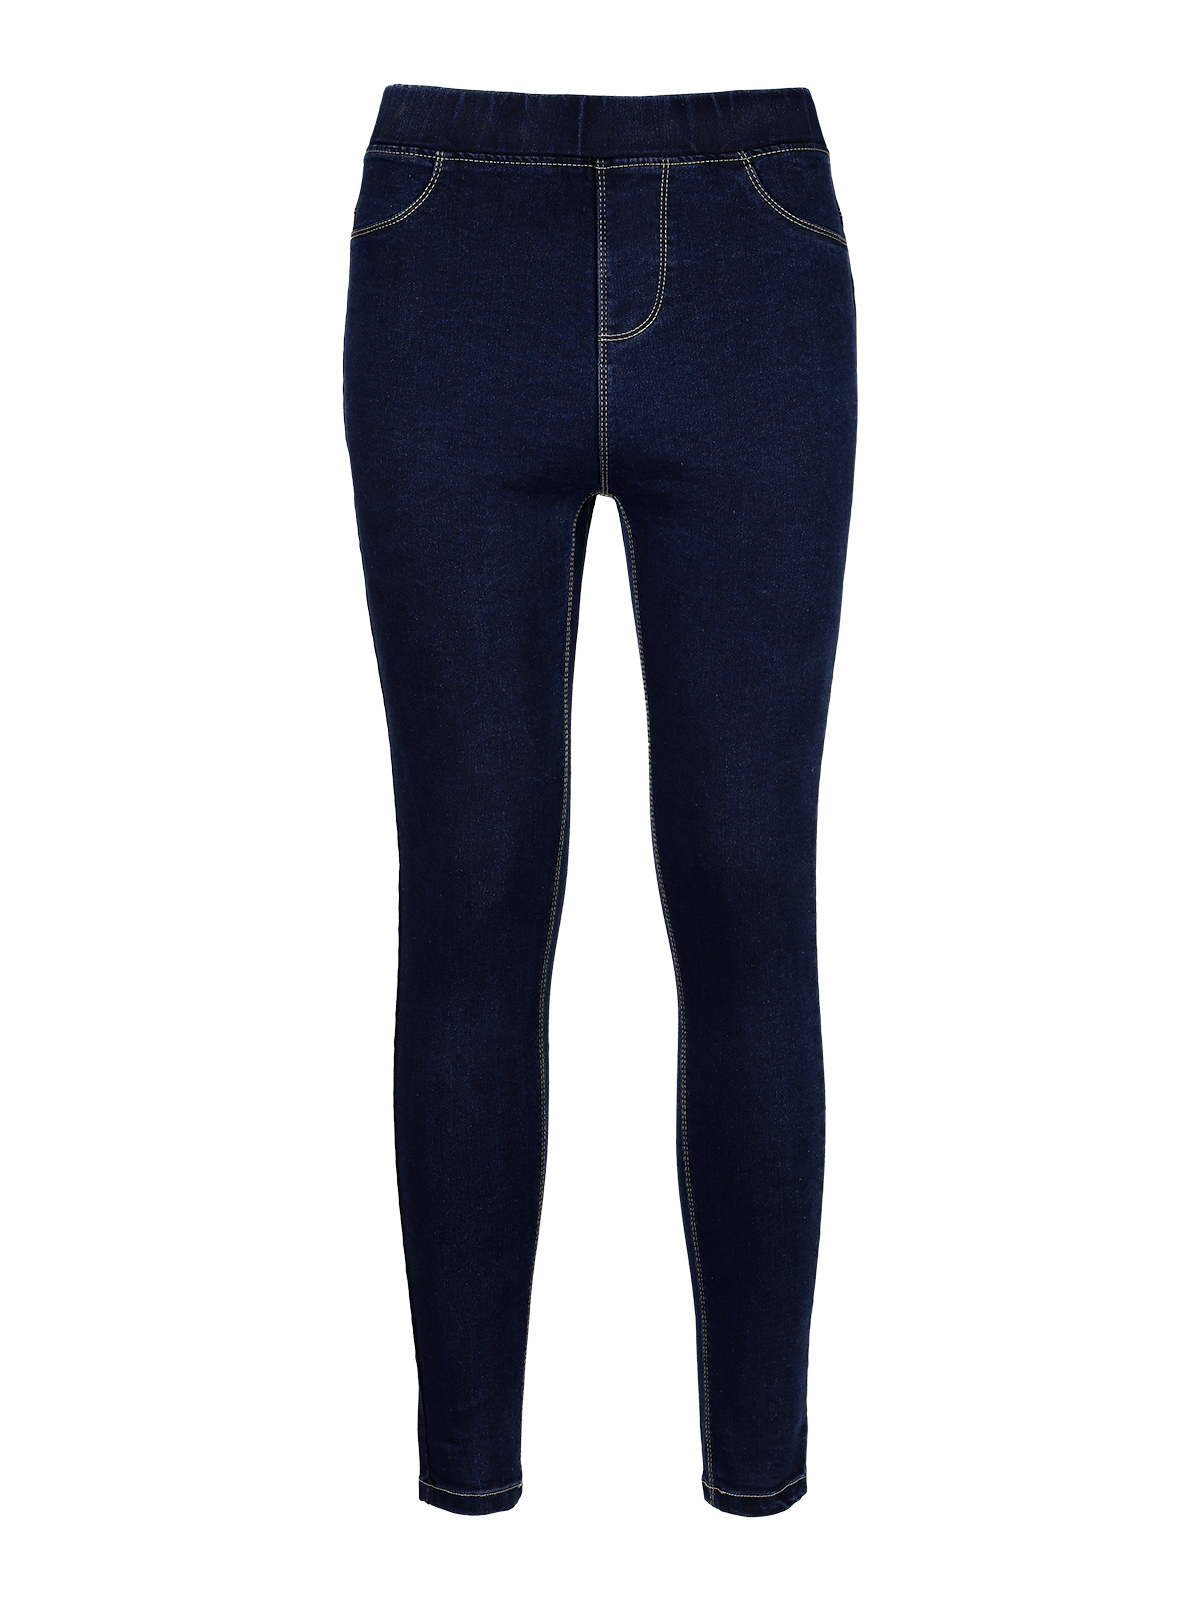 Jeggings High Waist Jeans